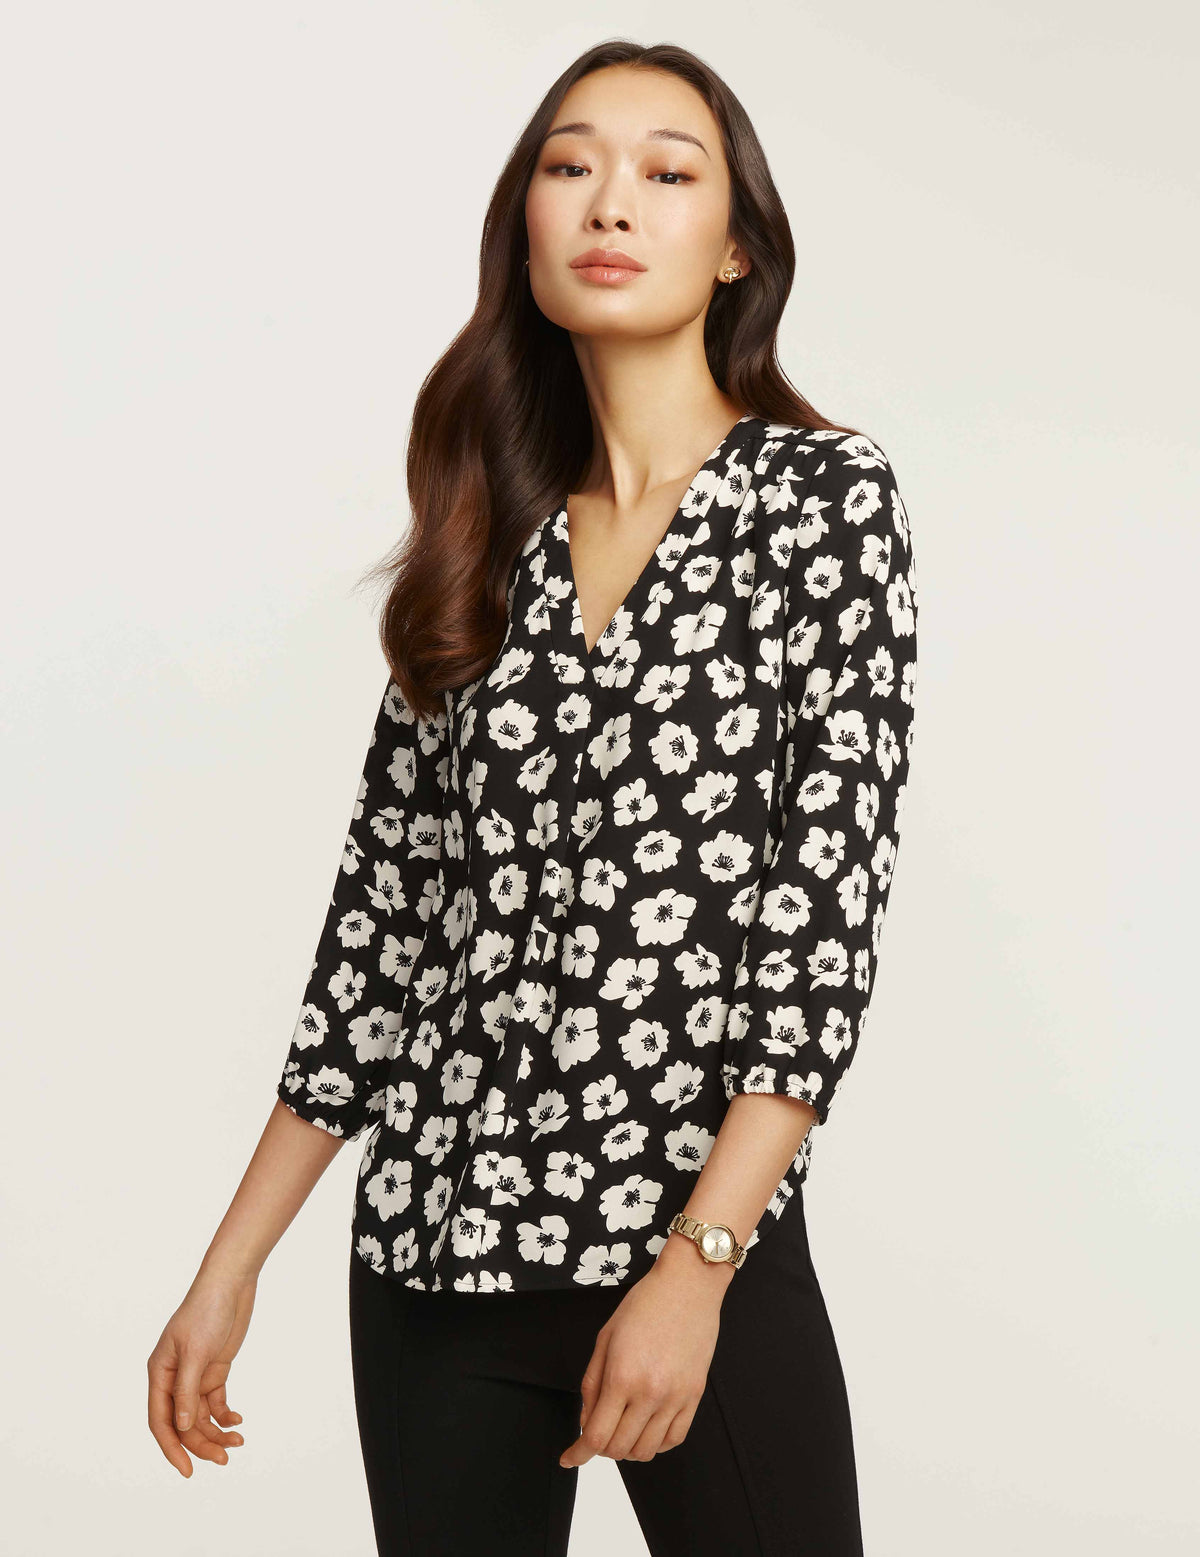 Giverny Floral V-Neck Blouse